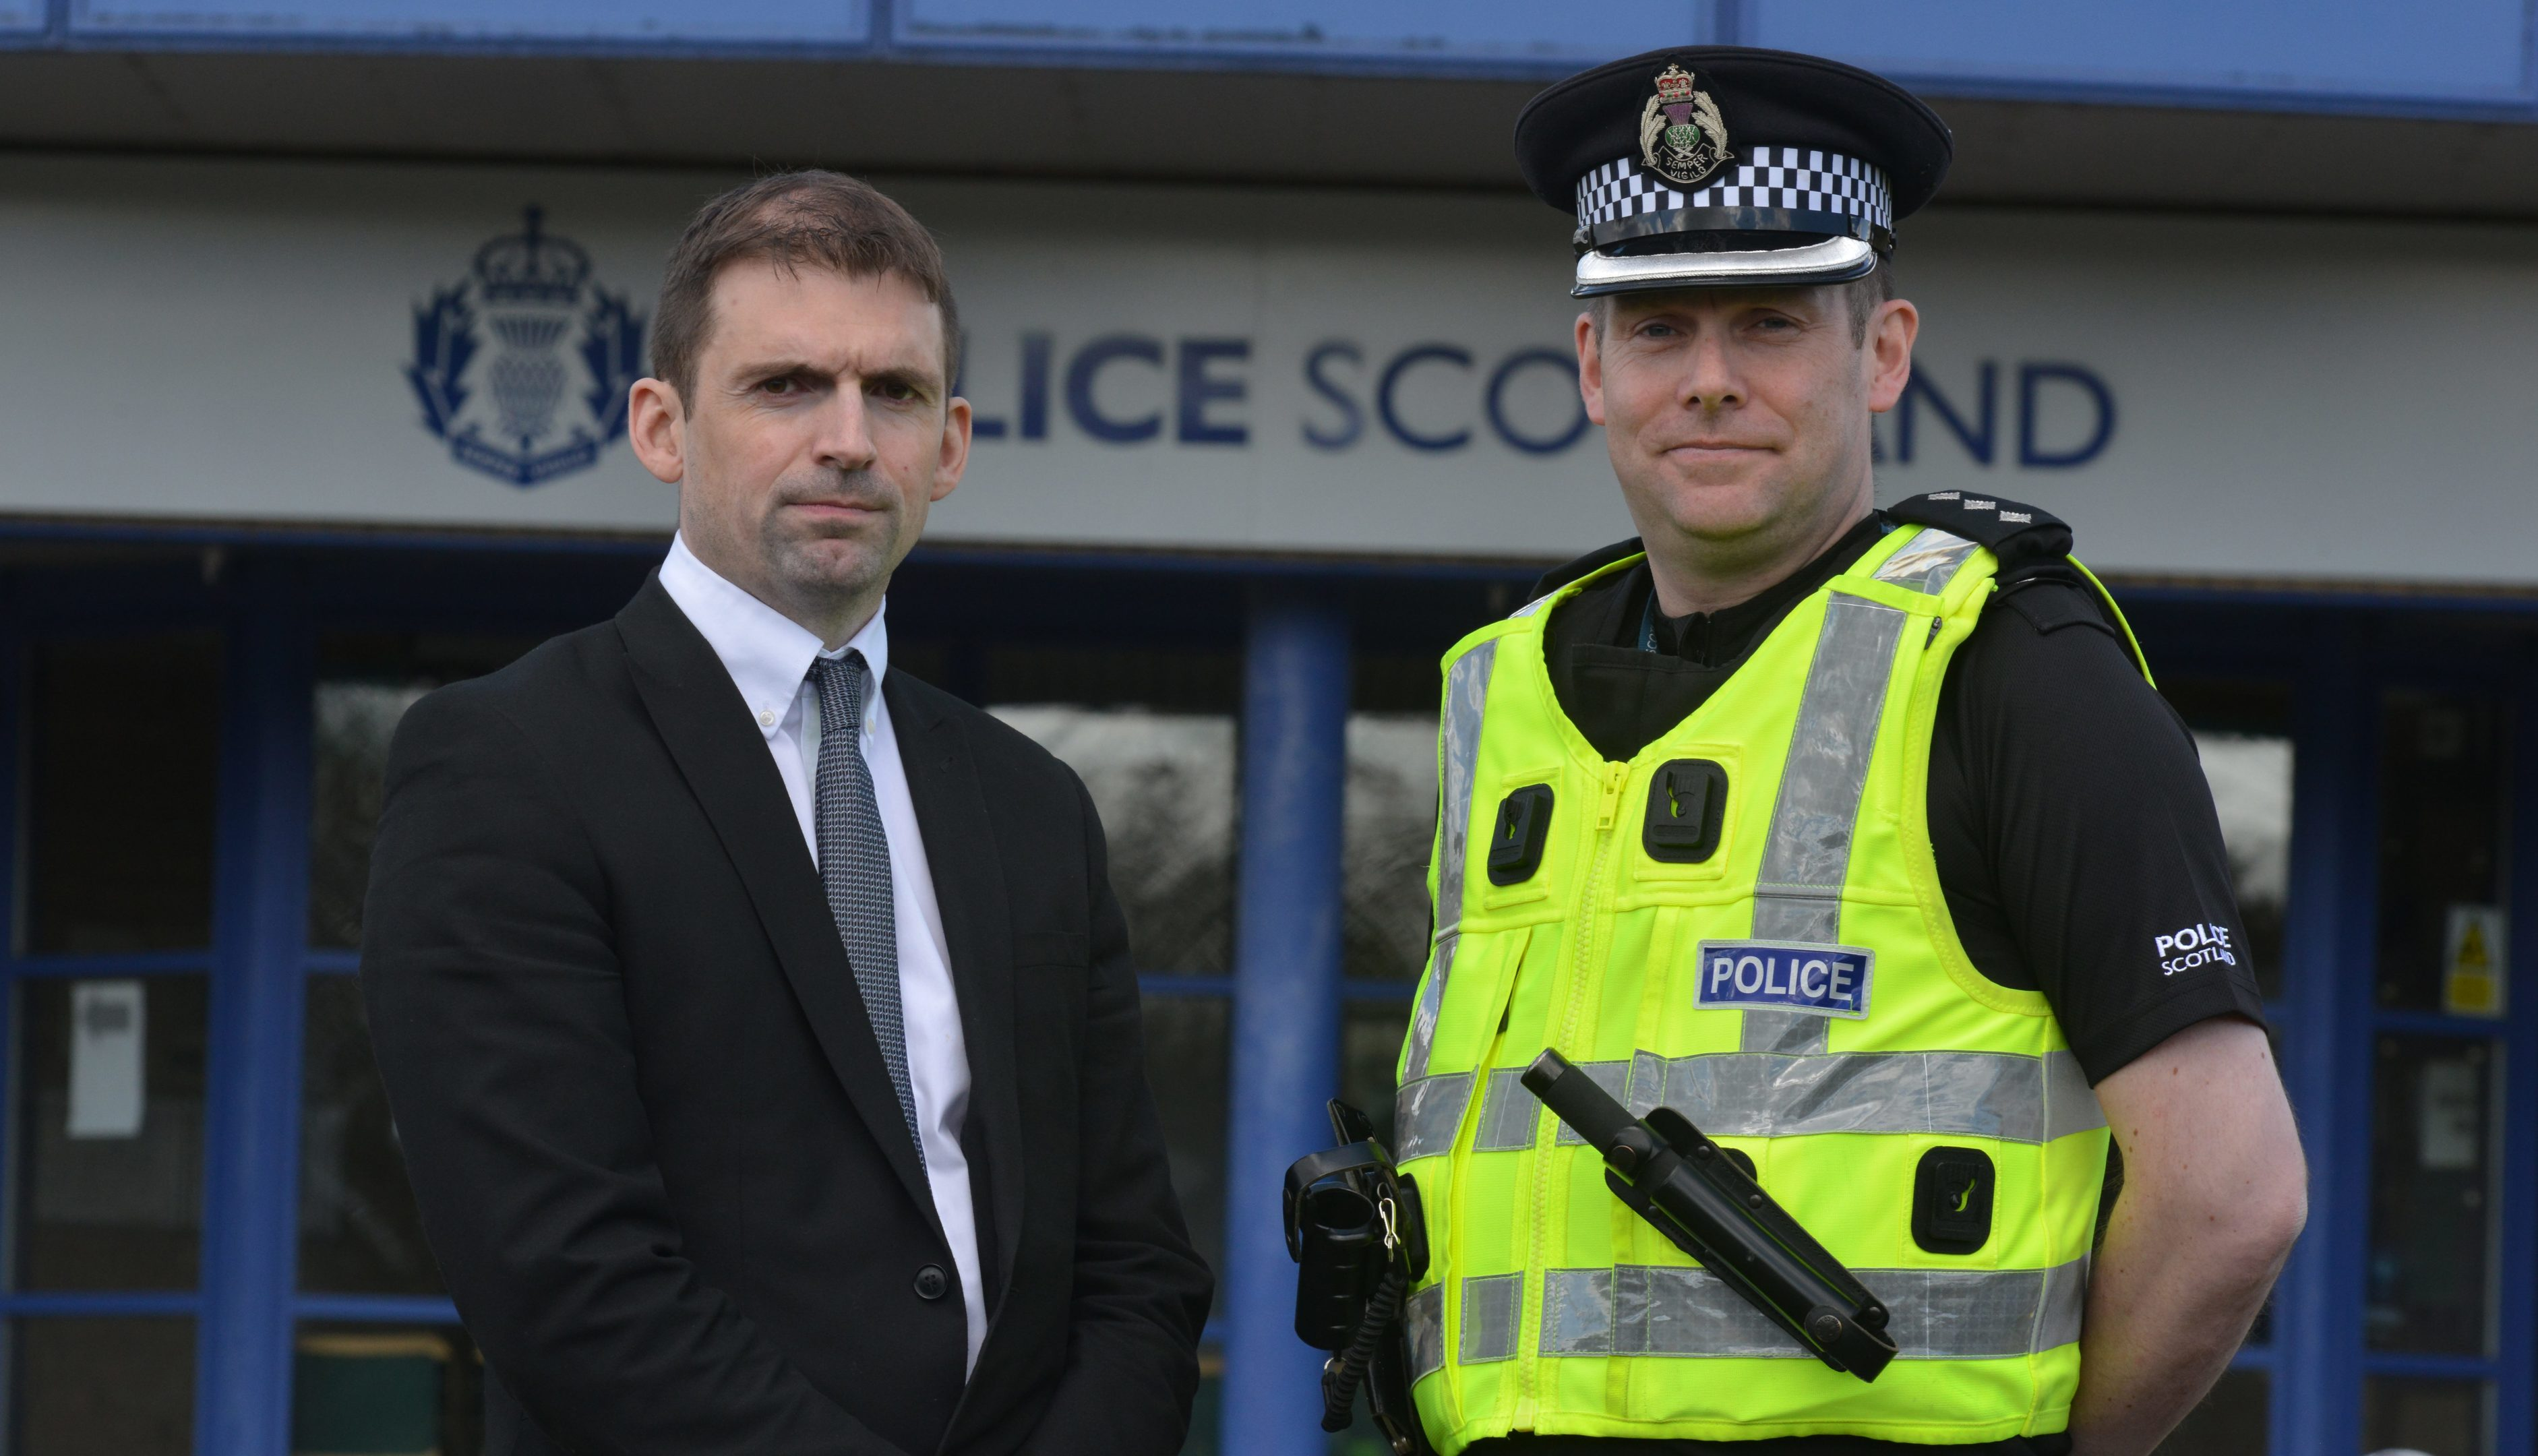 Detective Inspector Steven Sandilands and Chief Inspector Adrian Annandale.